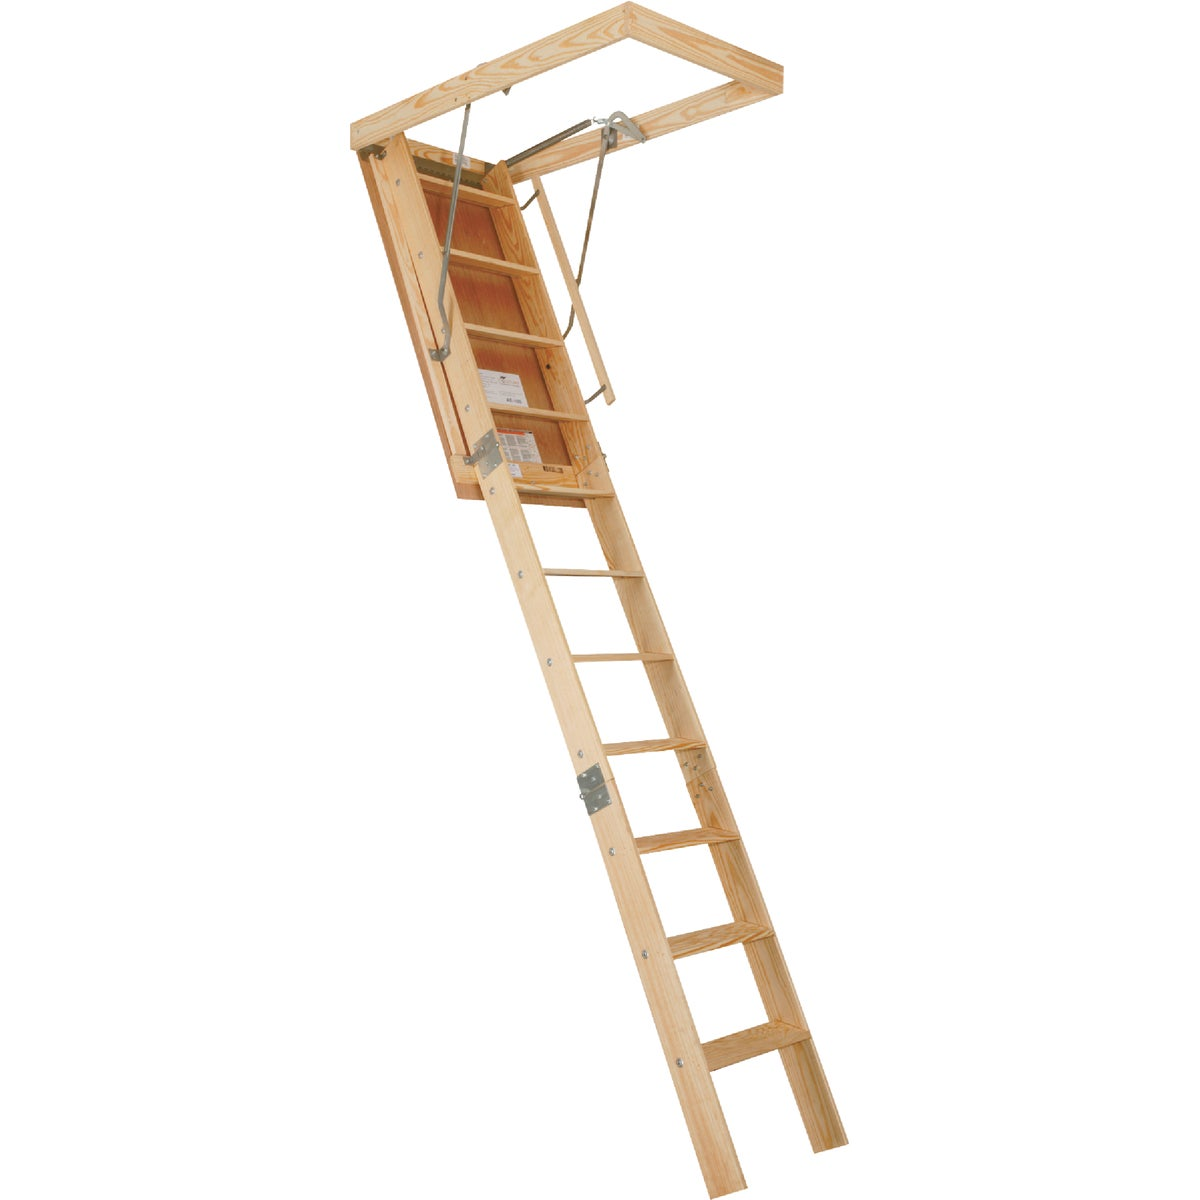 22X120 PREM ATTIC STAIR - AET100 by Louisville Ladder